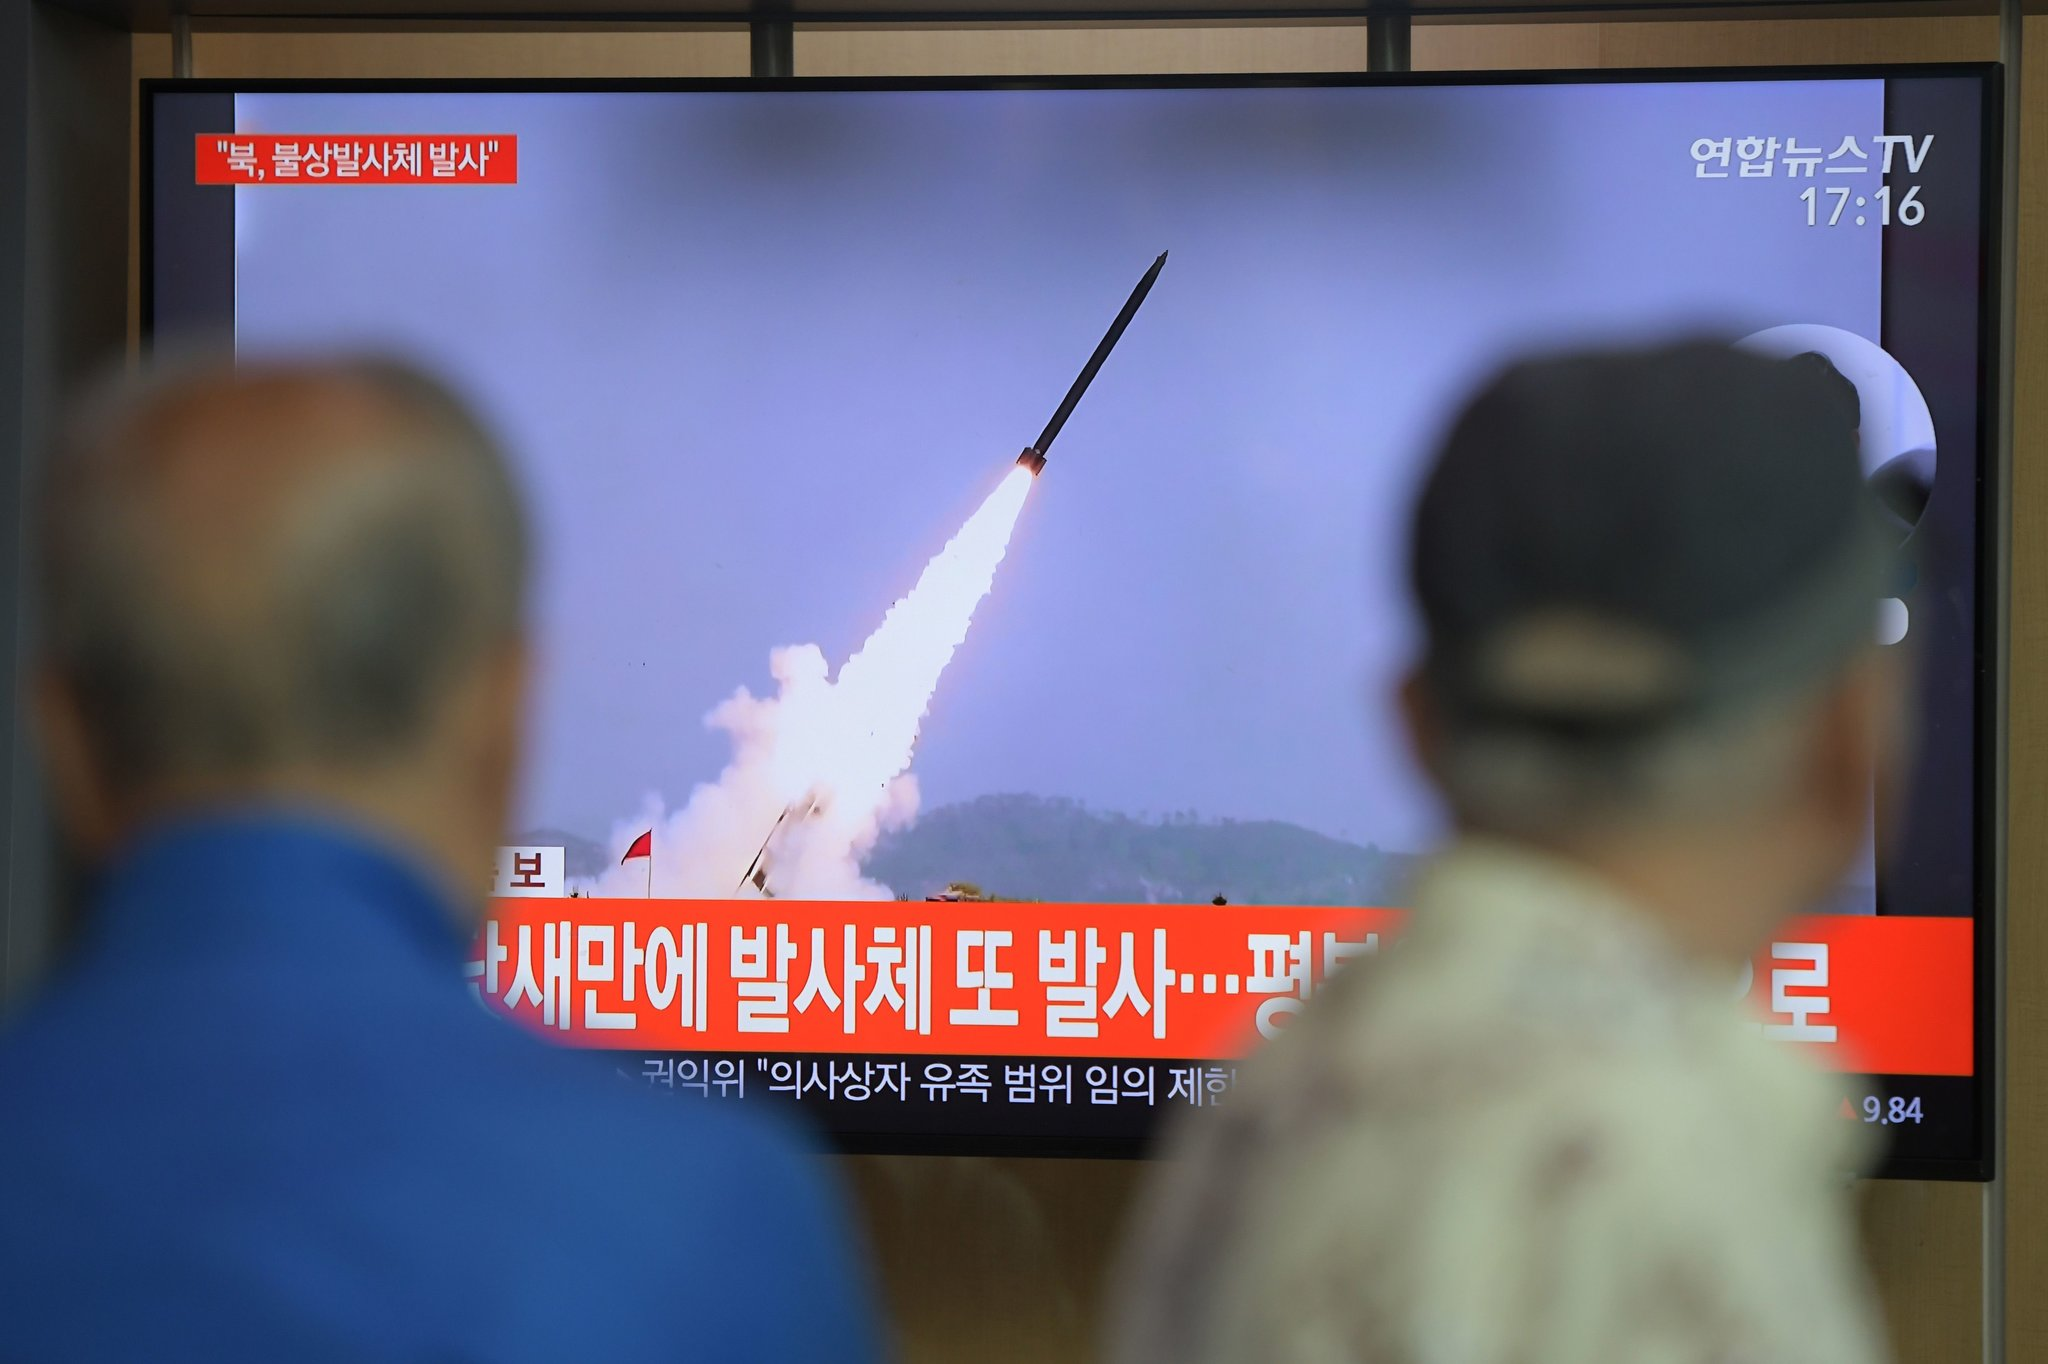 A television showing file footage of North Korean missiles during a South Korean news broadcast at the Seoul Railway Station on Thursday. Credit Jung Yeon-Je/Agence France-Presse — Getty Images